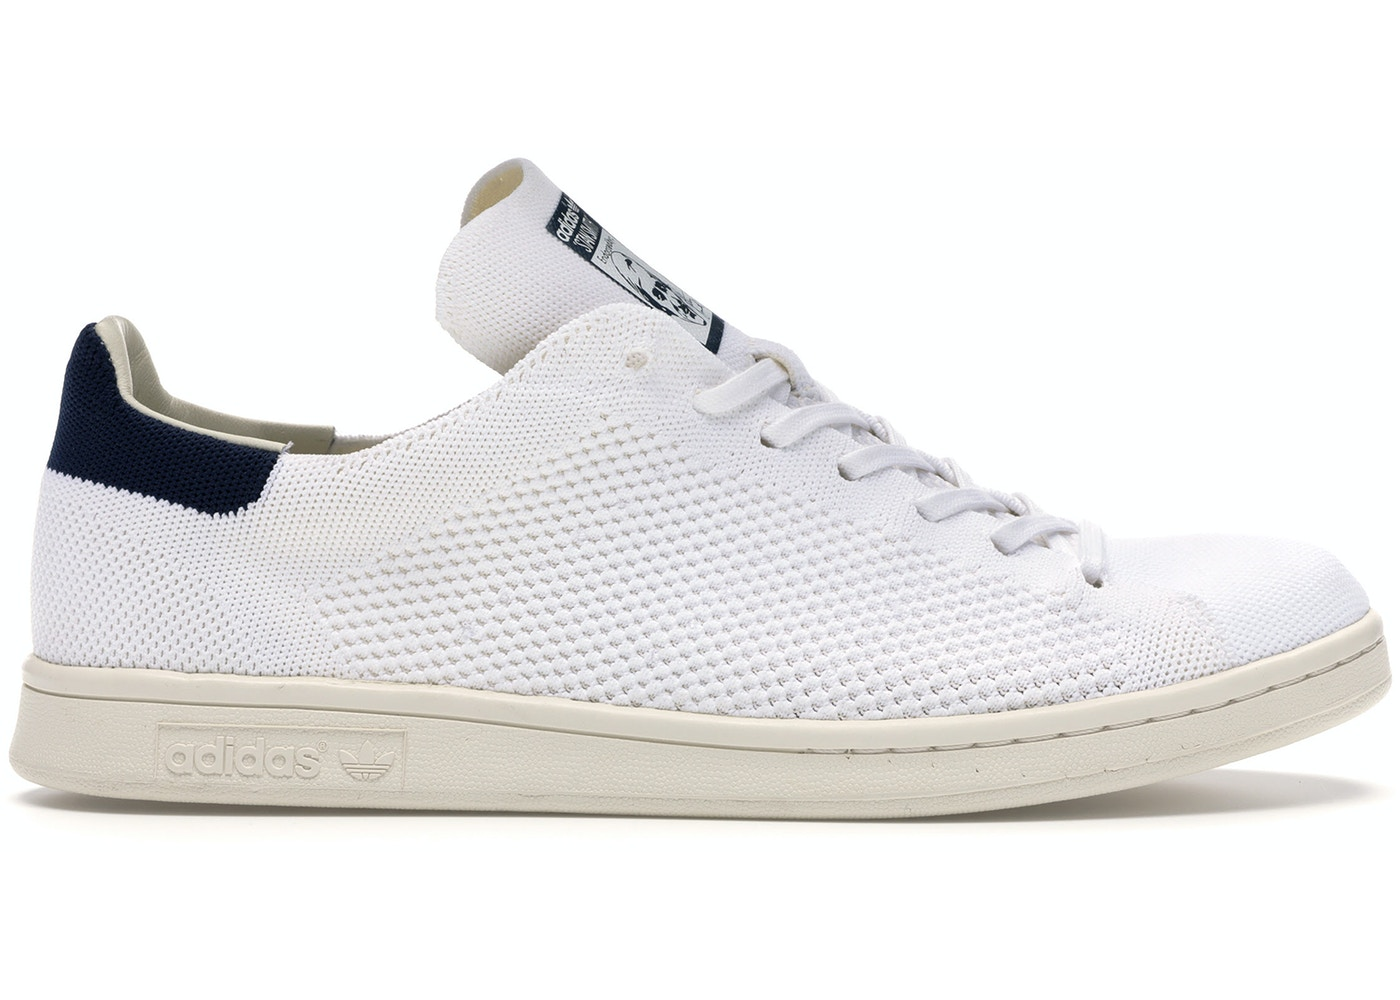 popular stores offer discounts temperament shoes adidas Stan Smith Primeknit White Blue